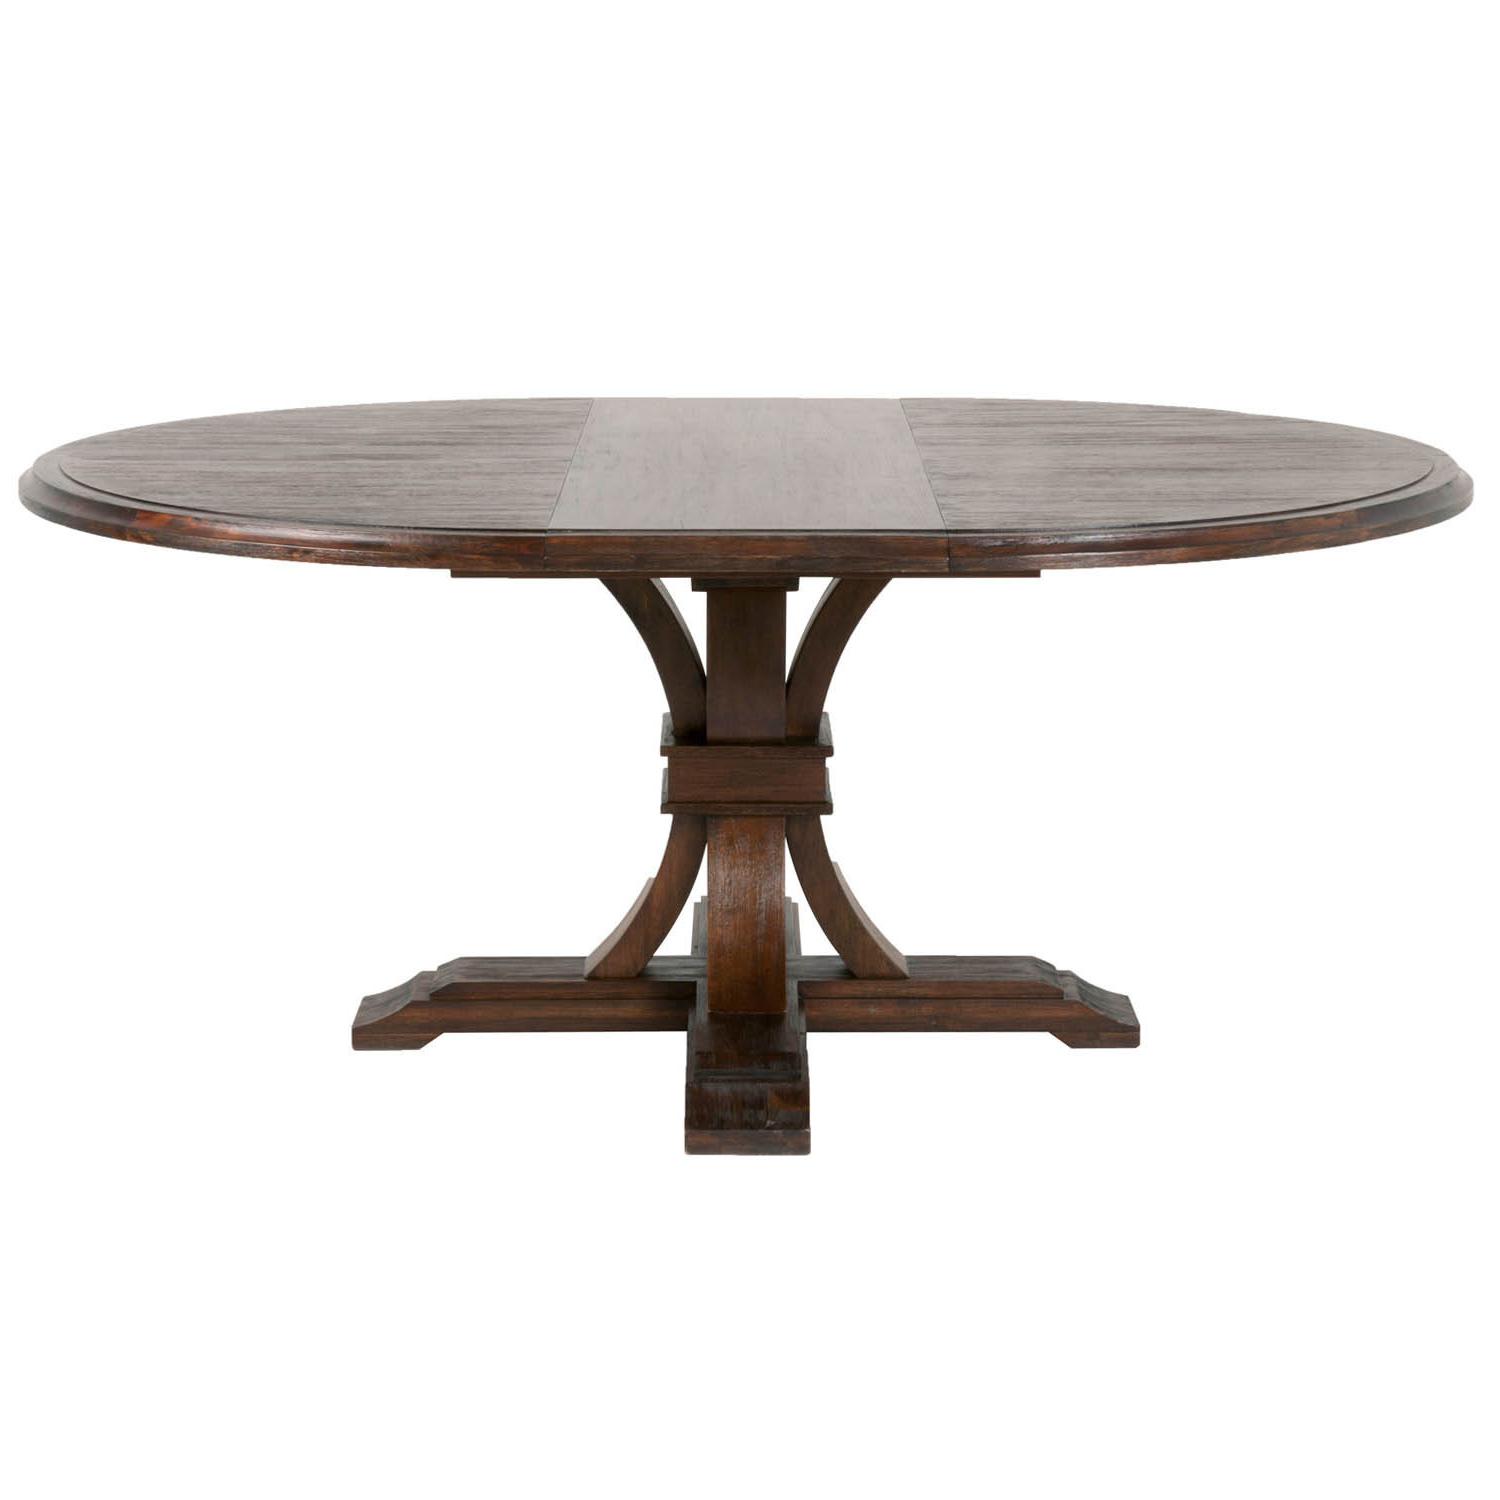 Recent Darby Round Extension Dining Table, Rustic Java - Brown throughout Rustic Mahogany Extending Dining Tables